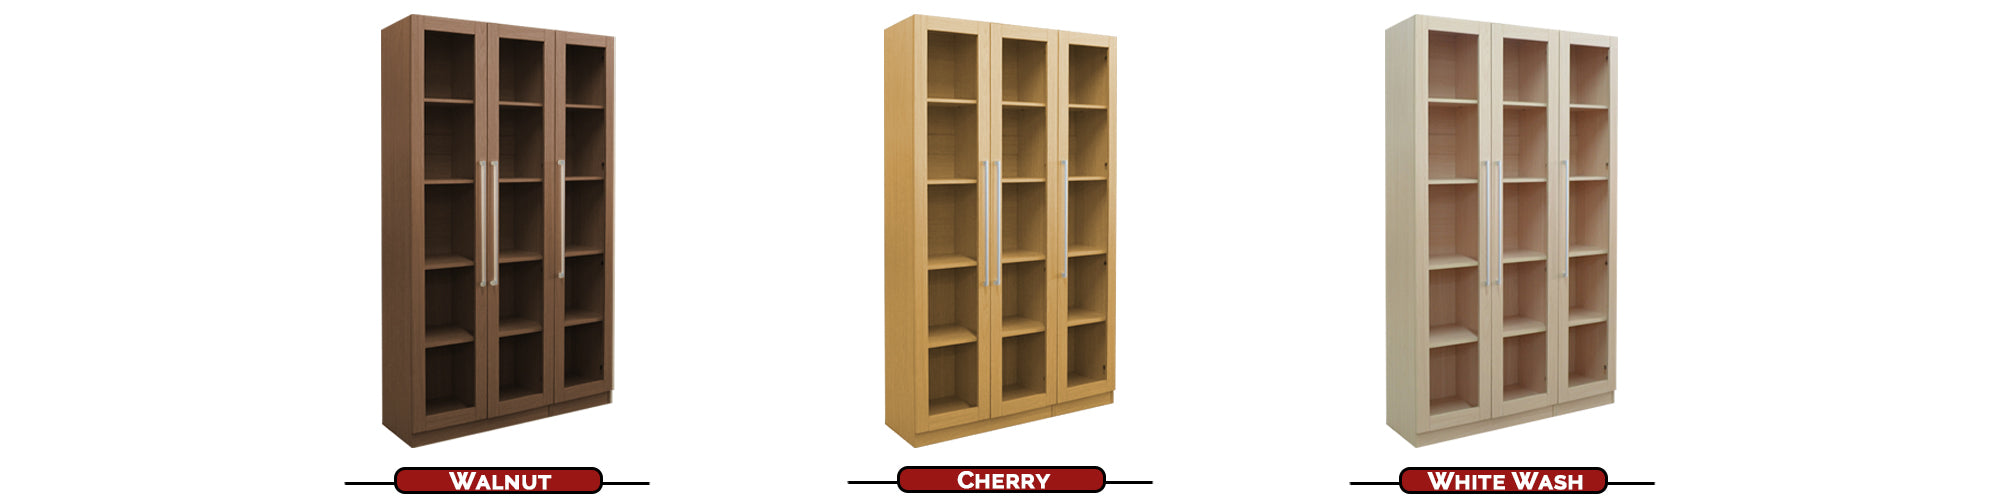 - Engineered Solid Wood and Board - Smooth And Scratch Resistant Board Finish - Metal Handles with Comfortable Grip - 3x Glass Inserted Swing Door - Shelf Pin Hole - Adjustable Shelves by 3 cm Between Gaps - Enclosed Back Panel - Multiple Interior Compartments For Books And Decorations